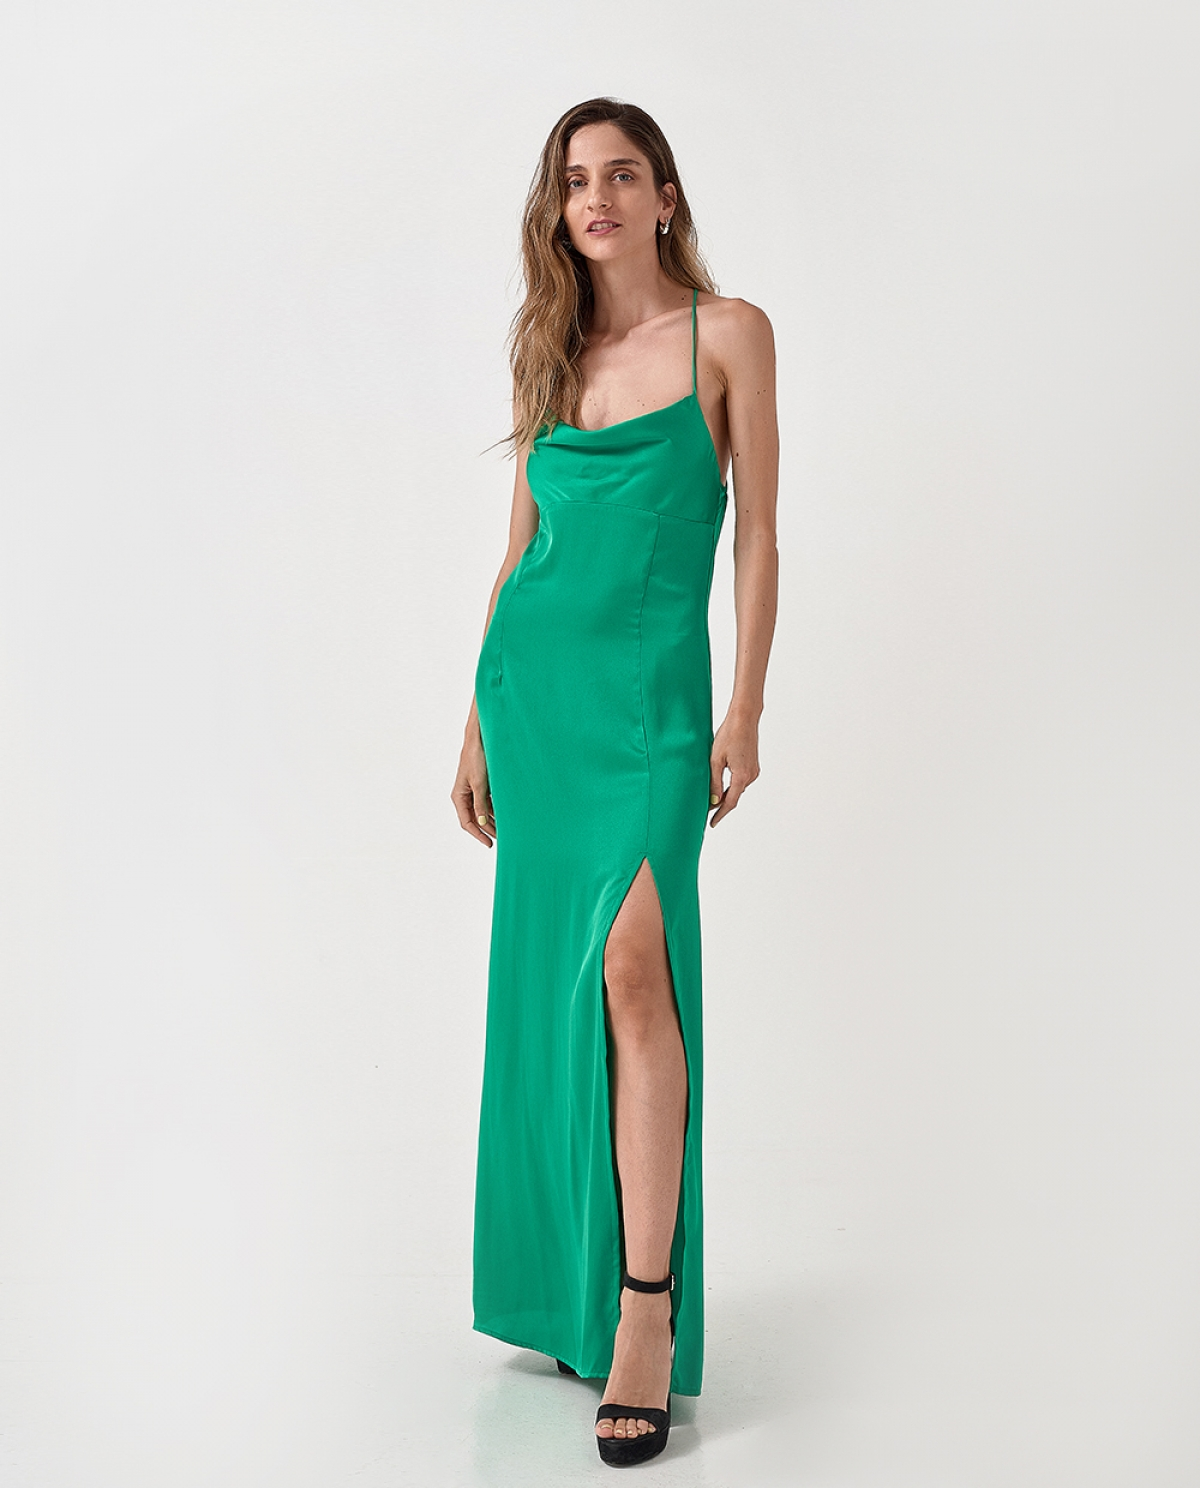 Inya Green Slip Dress